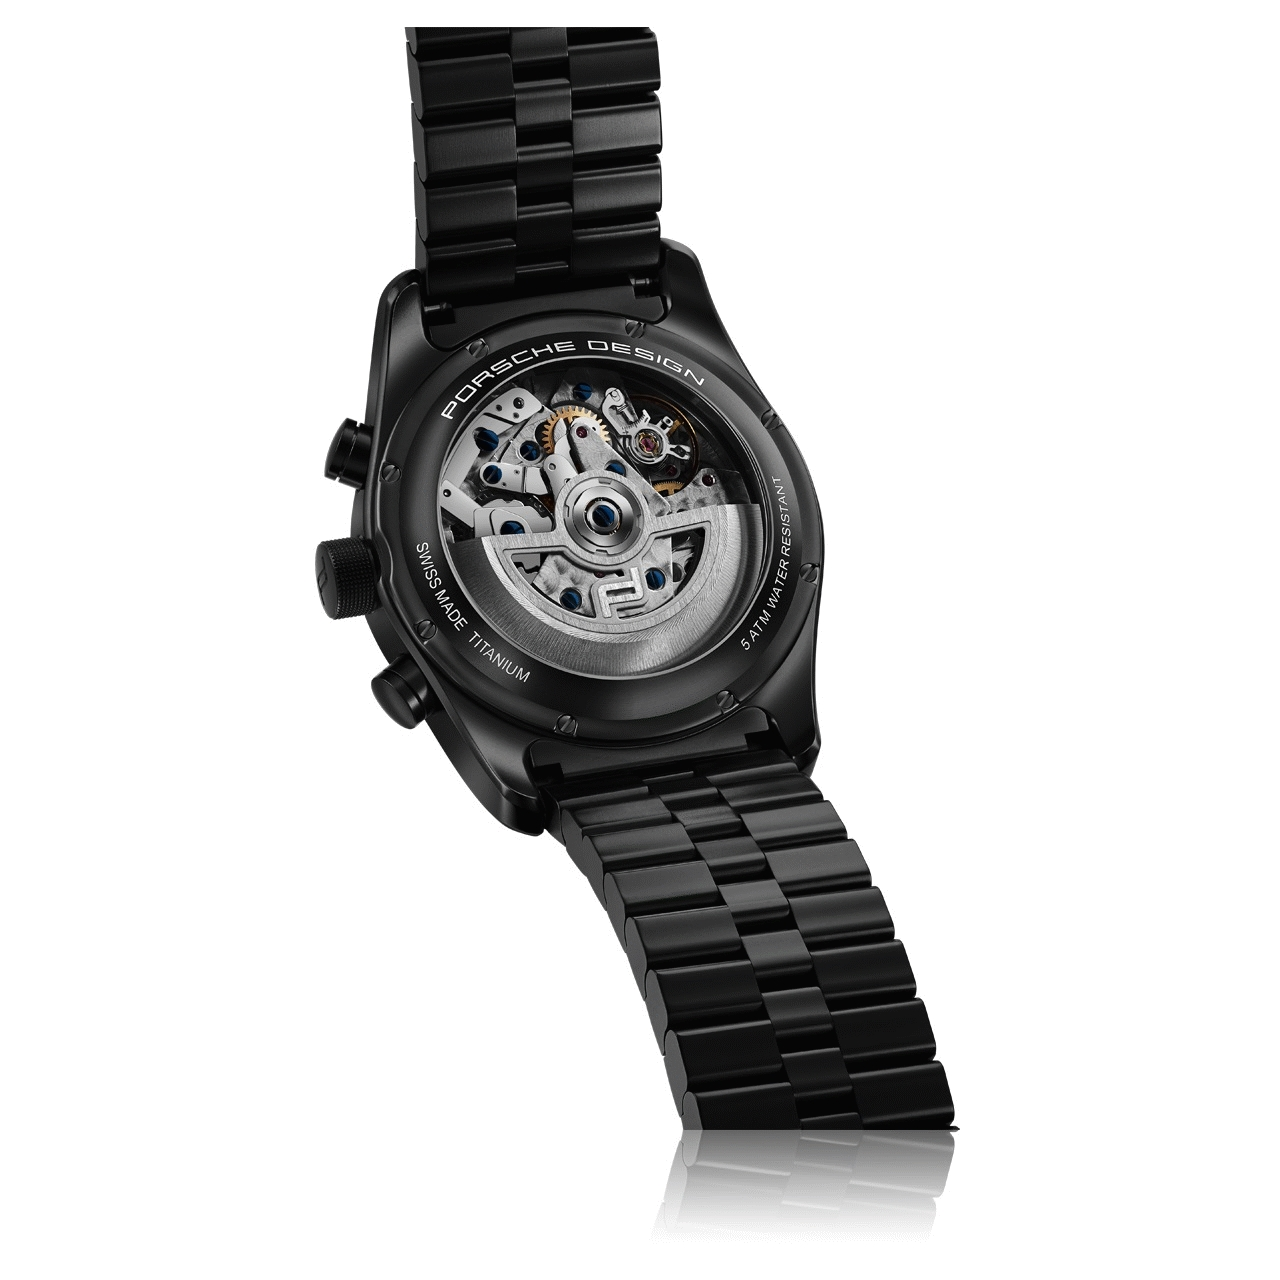 Chronotimer Series 1 Watch